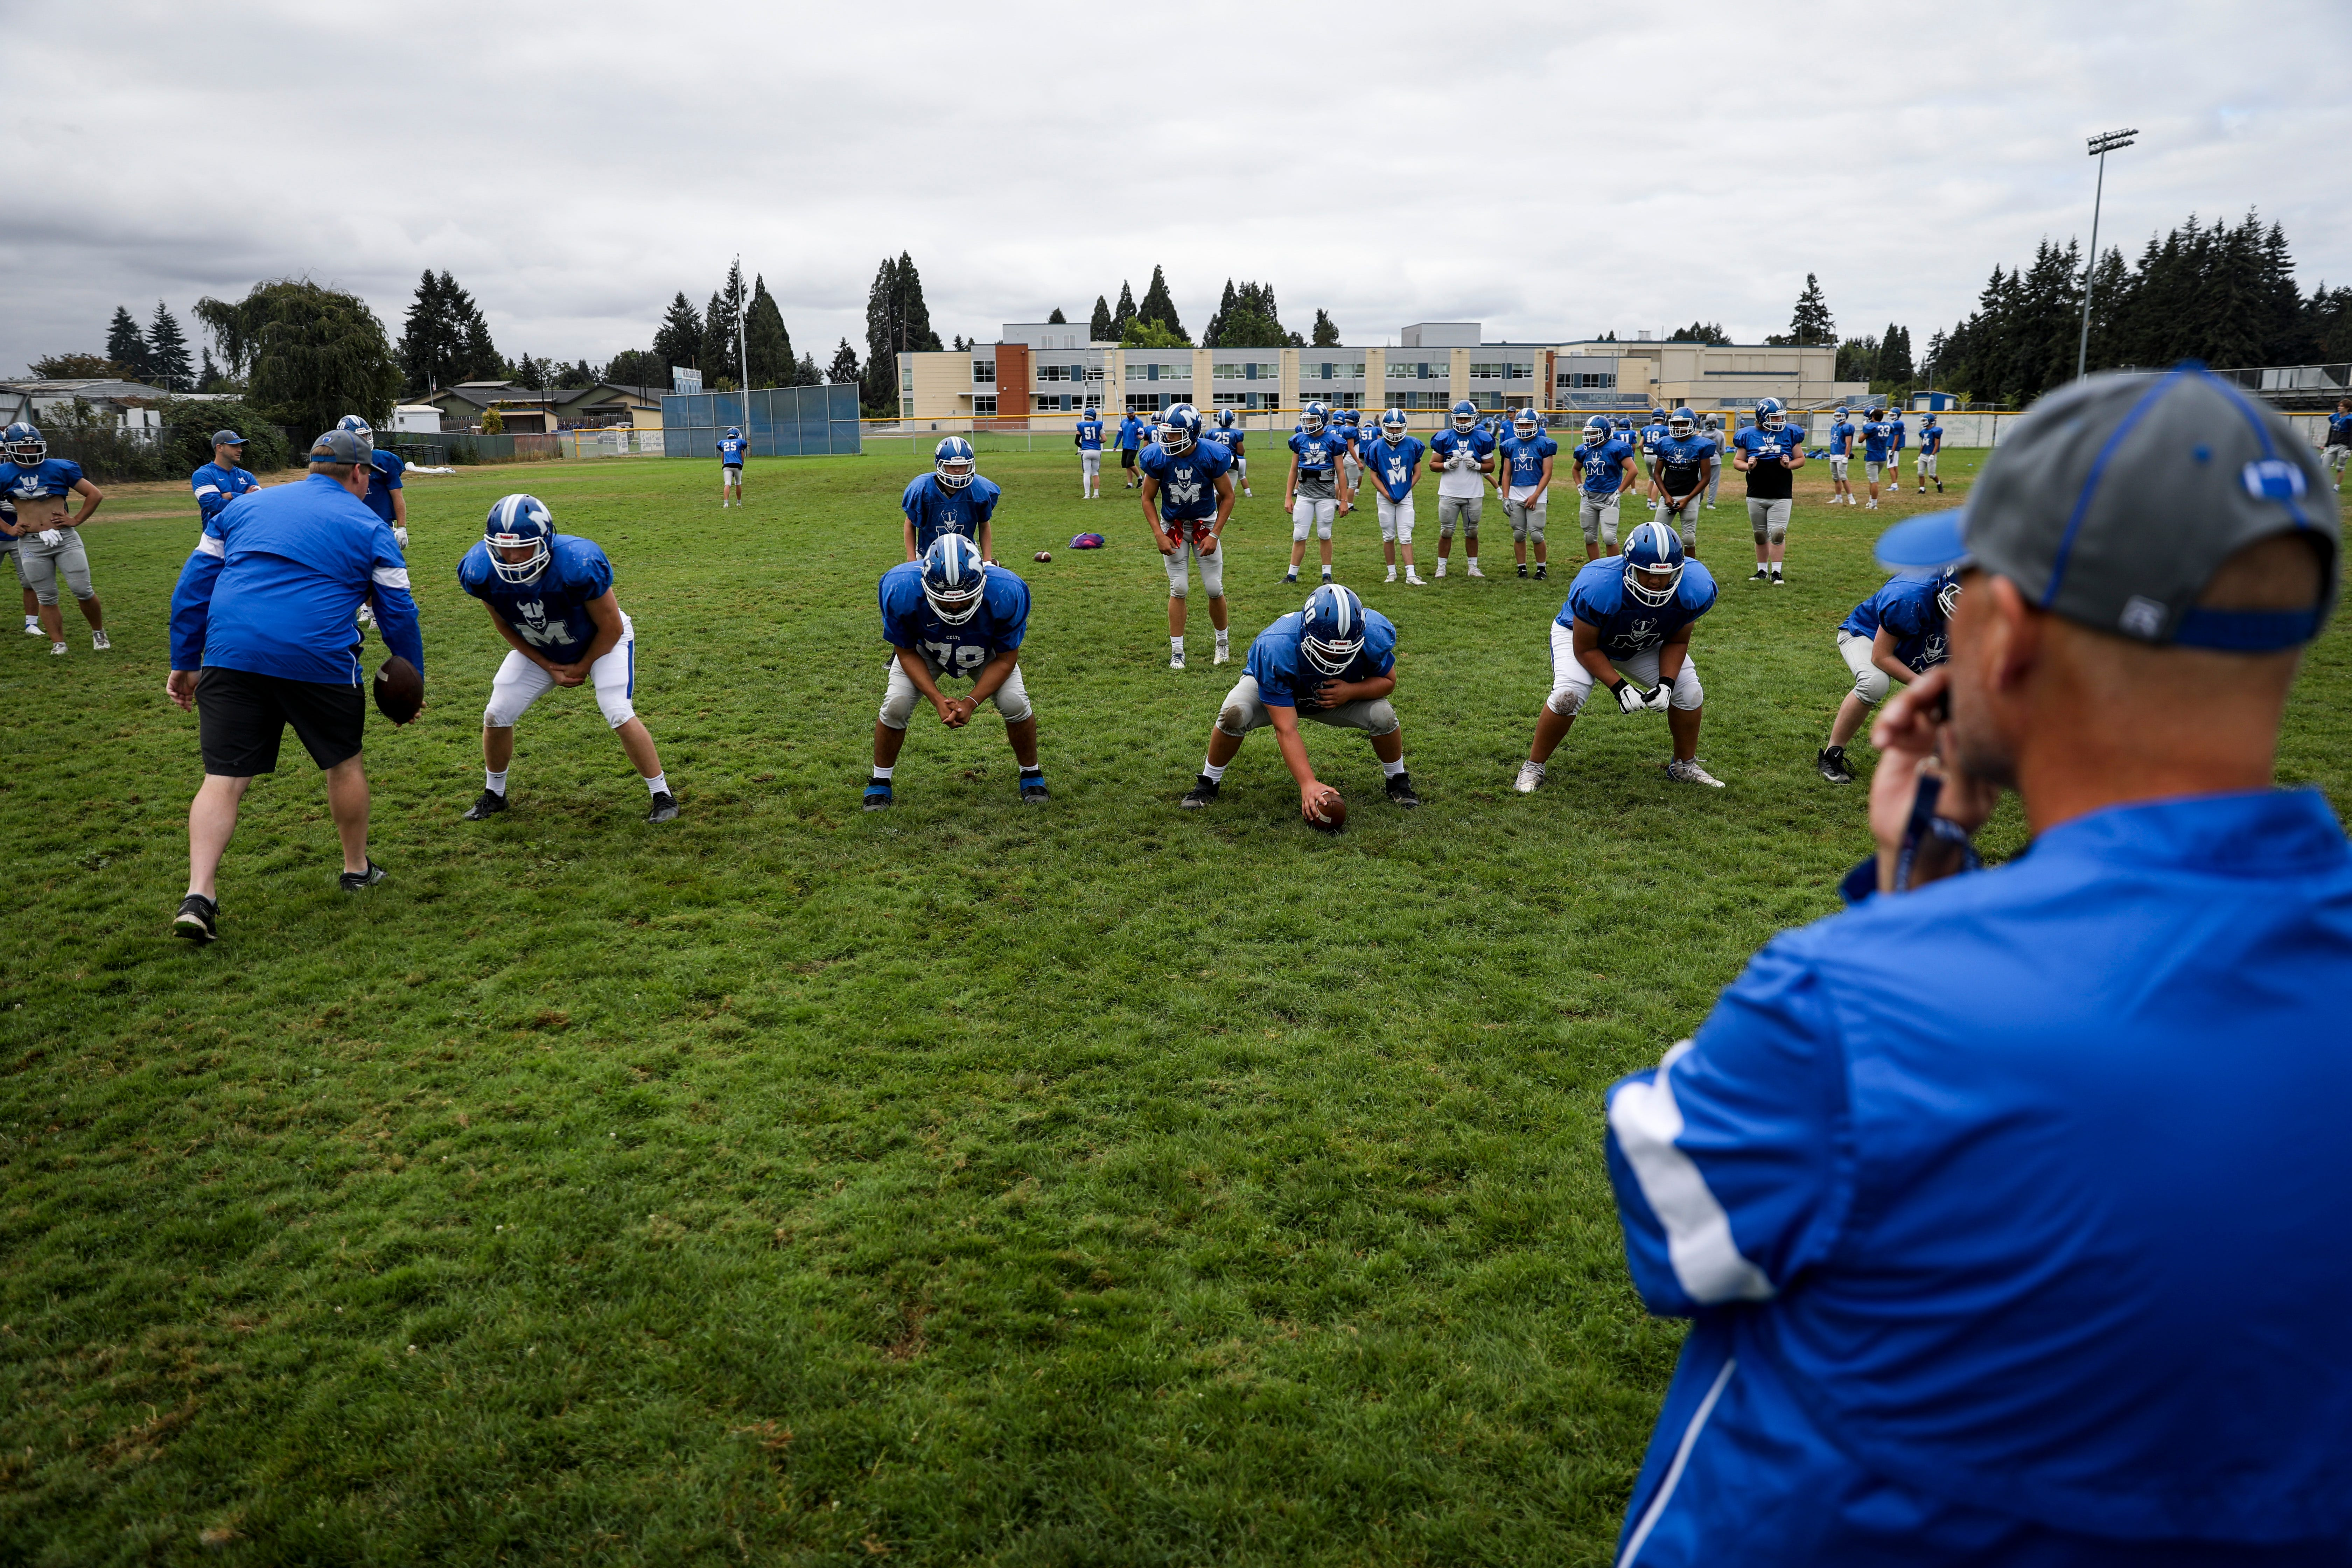 Lack of officials could affect high school sports season